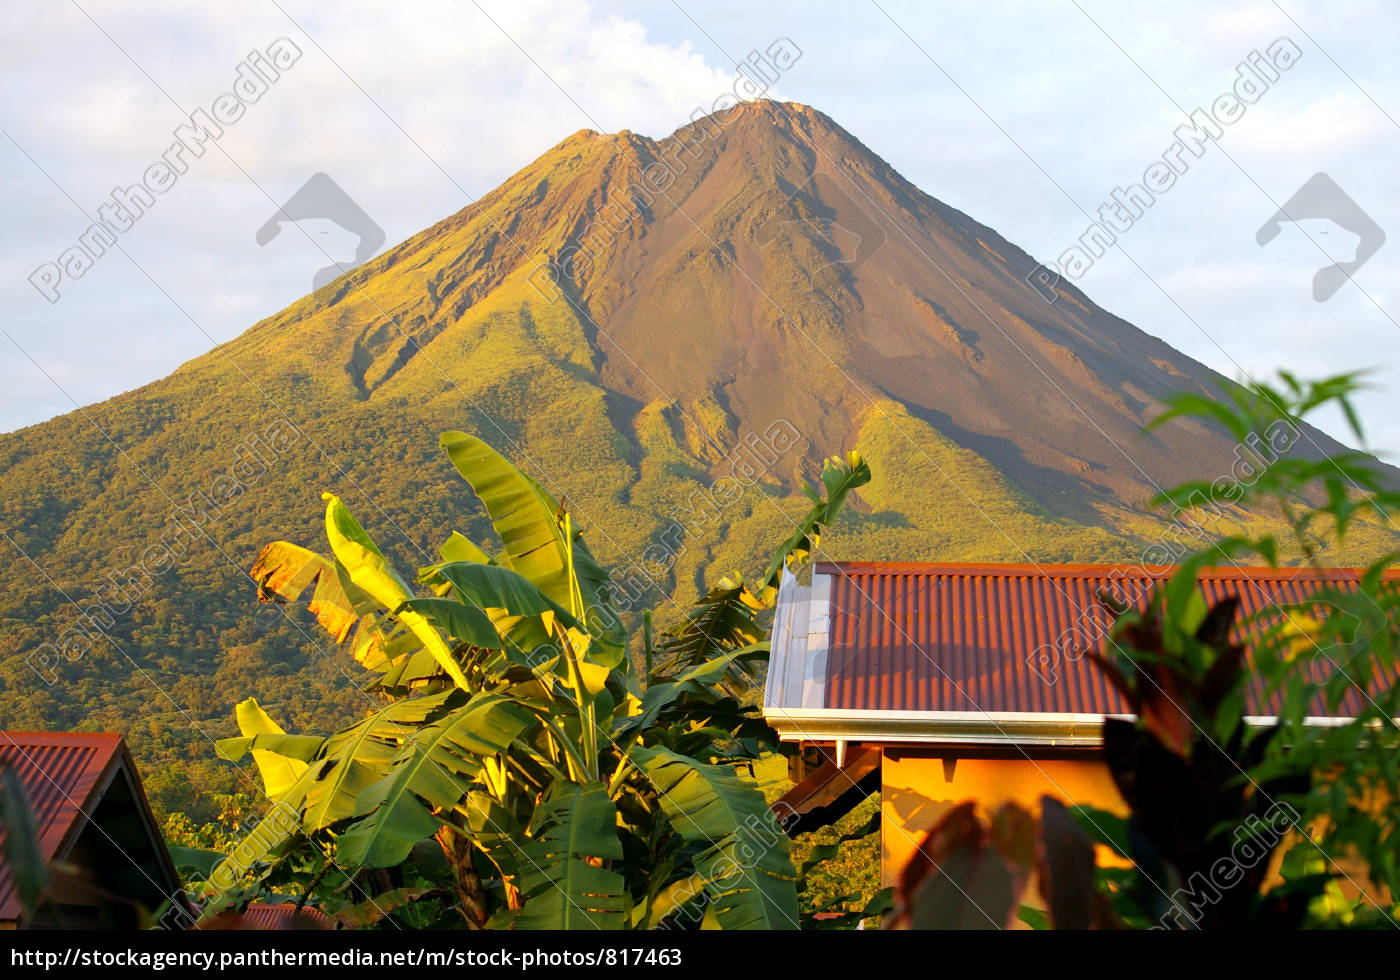 arenal, volcano - 817463